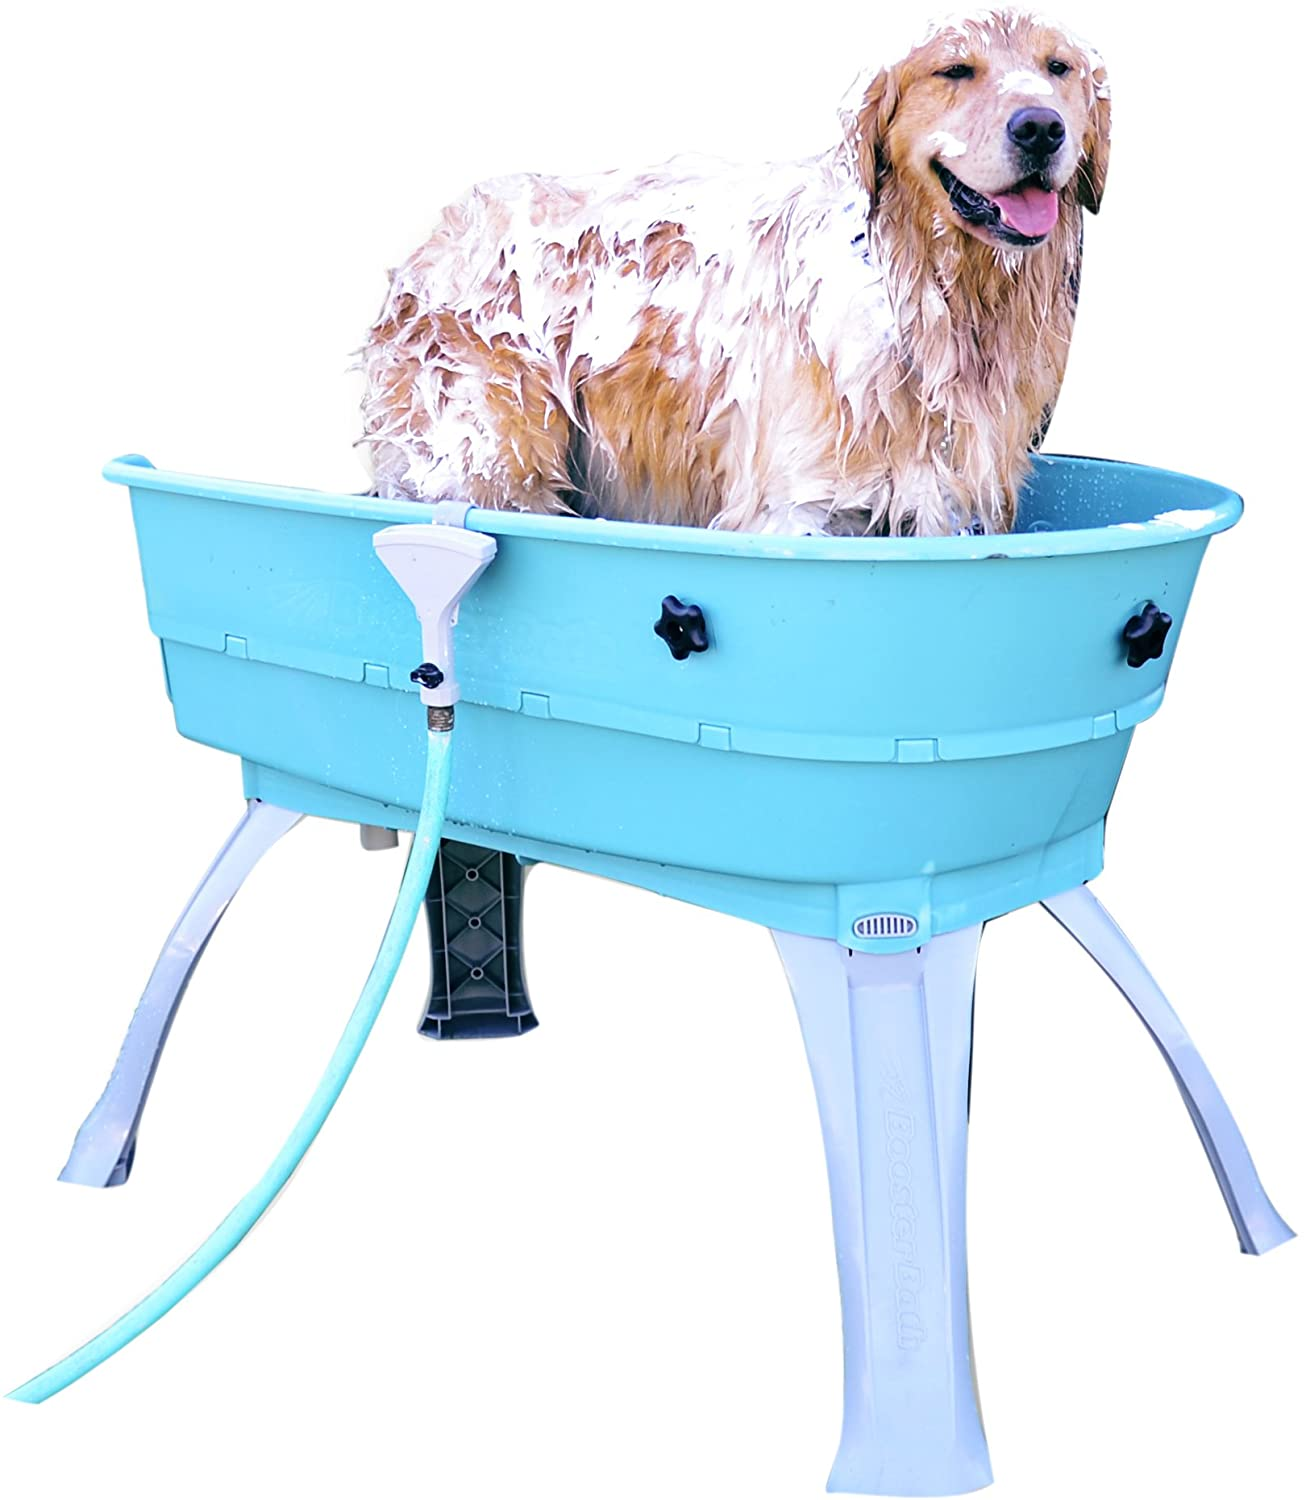 Pet Shower And Bath Supplies Amazon Com Booster Bath Elevated Pet Bathing Large